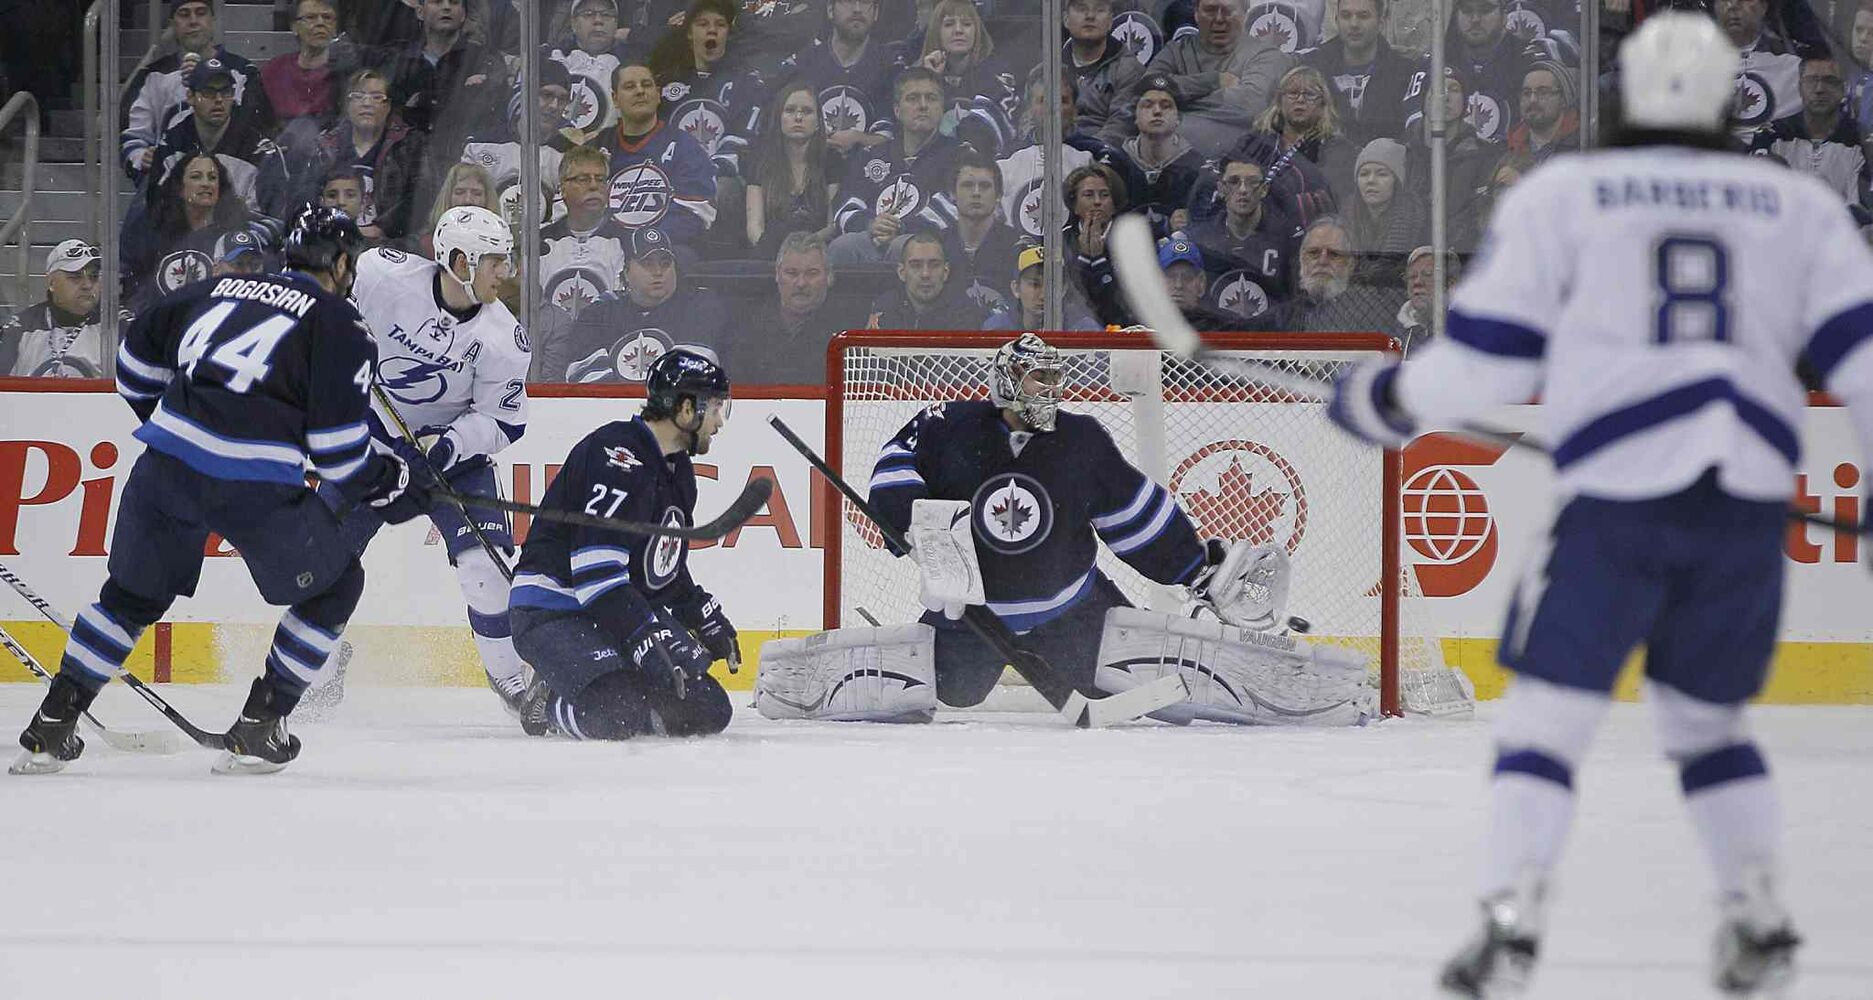 Winnipeg Jets' goaltender Ondrej Pavelec (31) can't stop the shot from Tampa Bay Lightning's Ondrej Palat (18) during second period. (John Woods / Winnipeg Free Press)